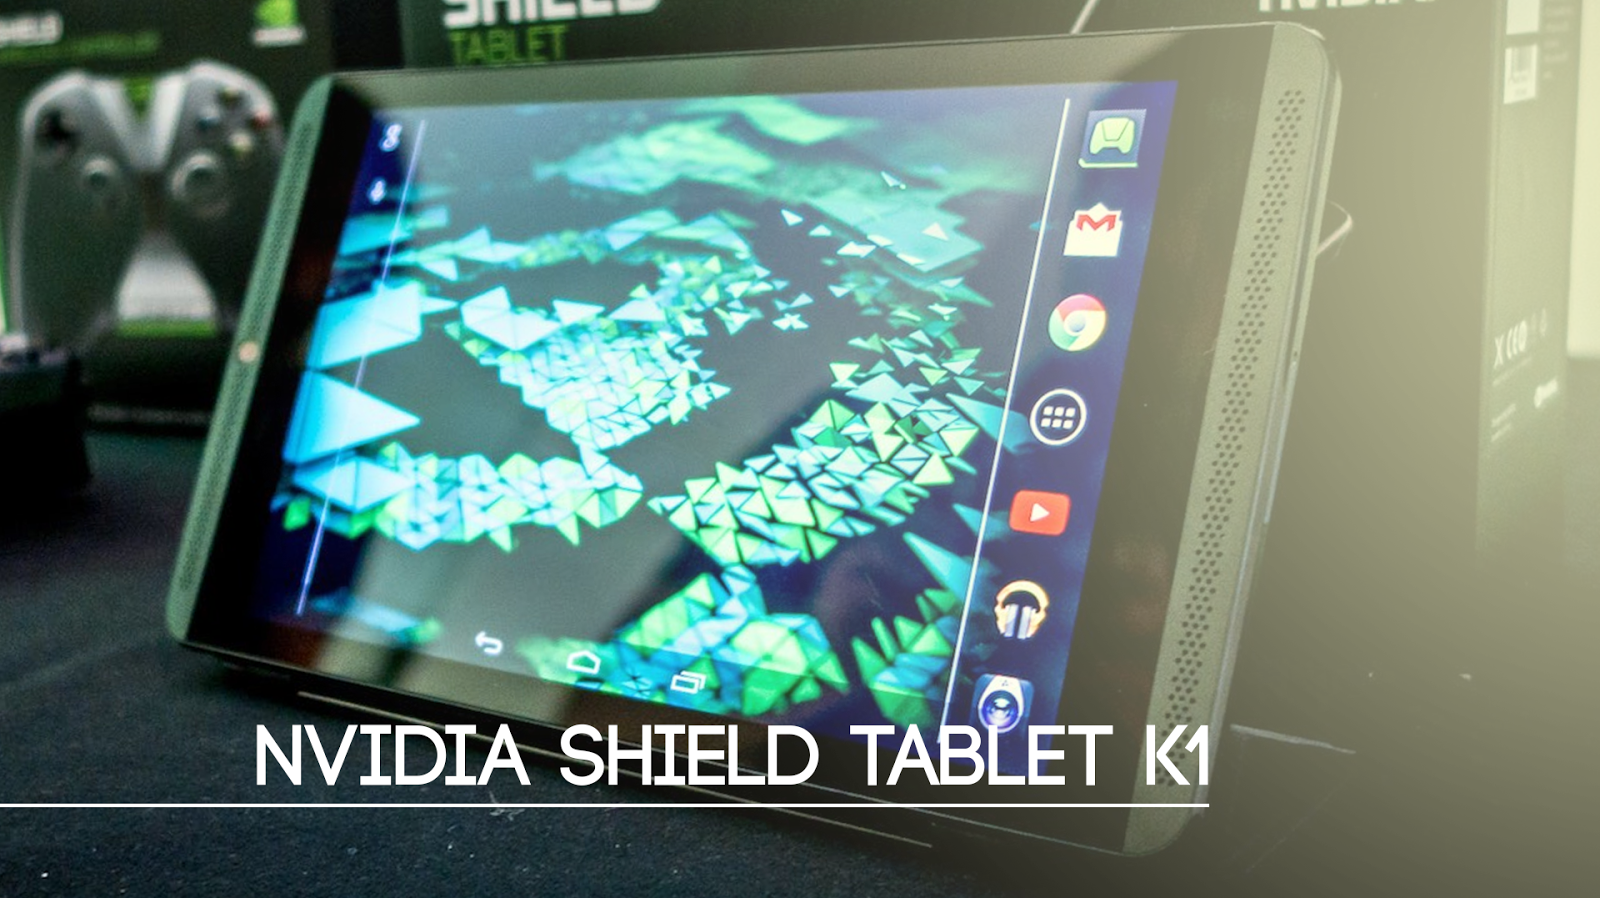 Nvidia Shield Tablet K1 Best Android Tablet 2017 10 Inches Cheap tablets Under $200